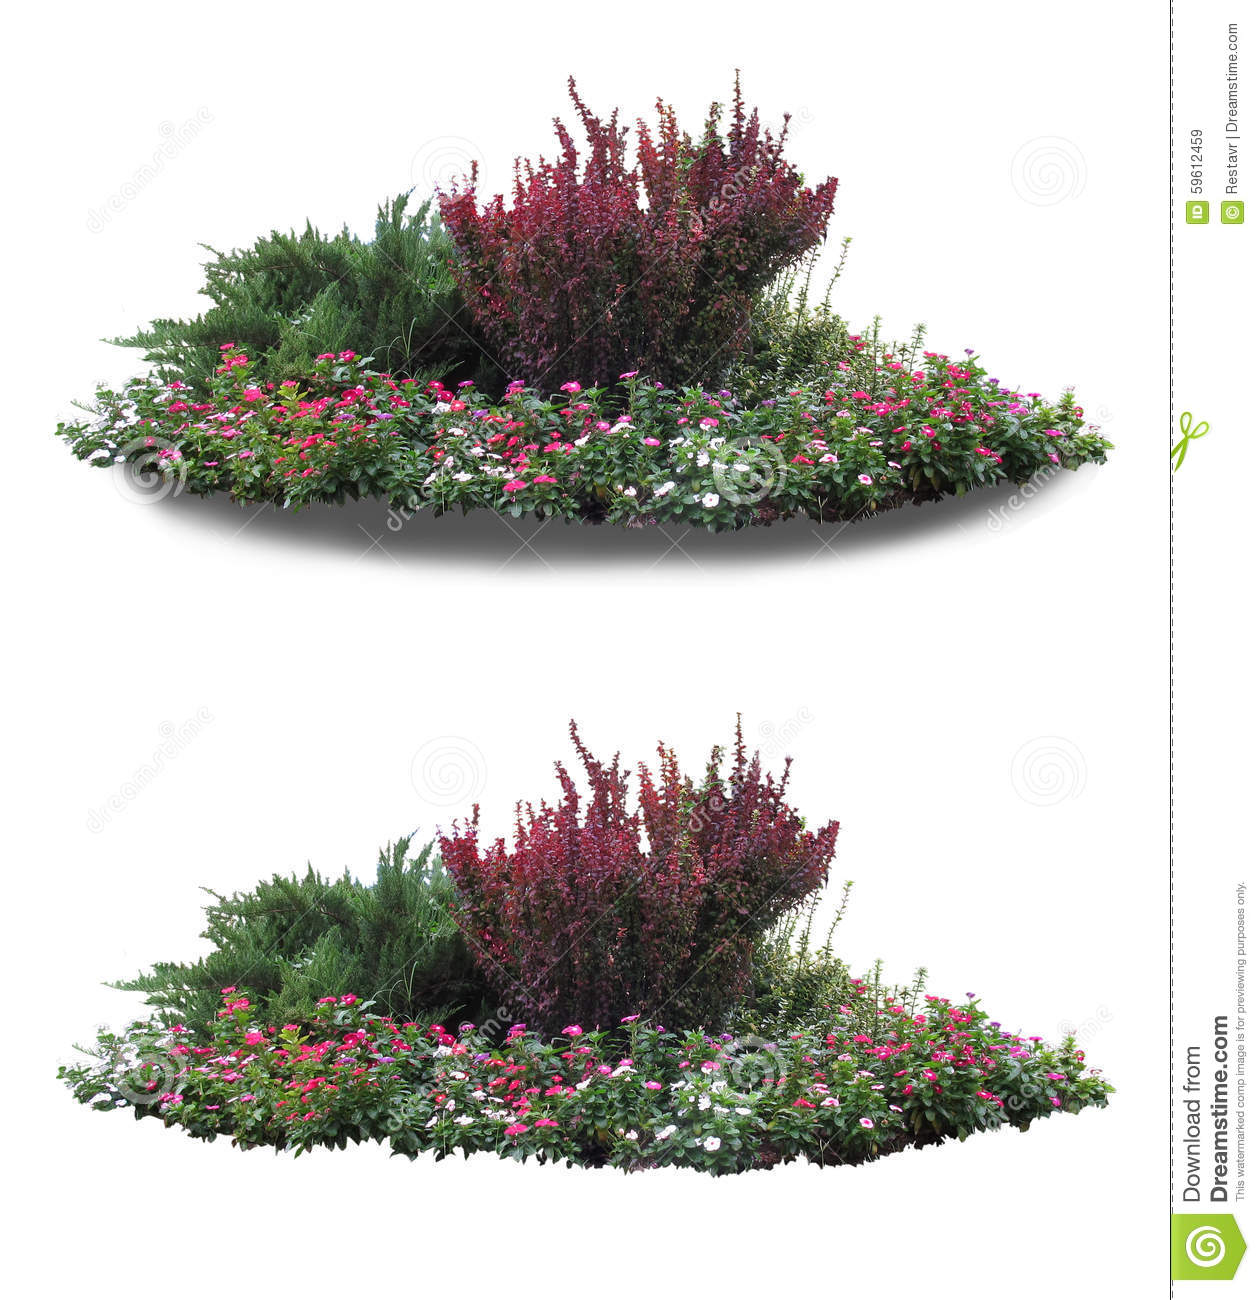 Landscaping Png (52+ images).